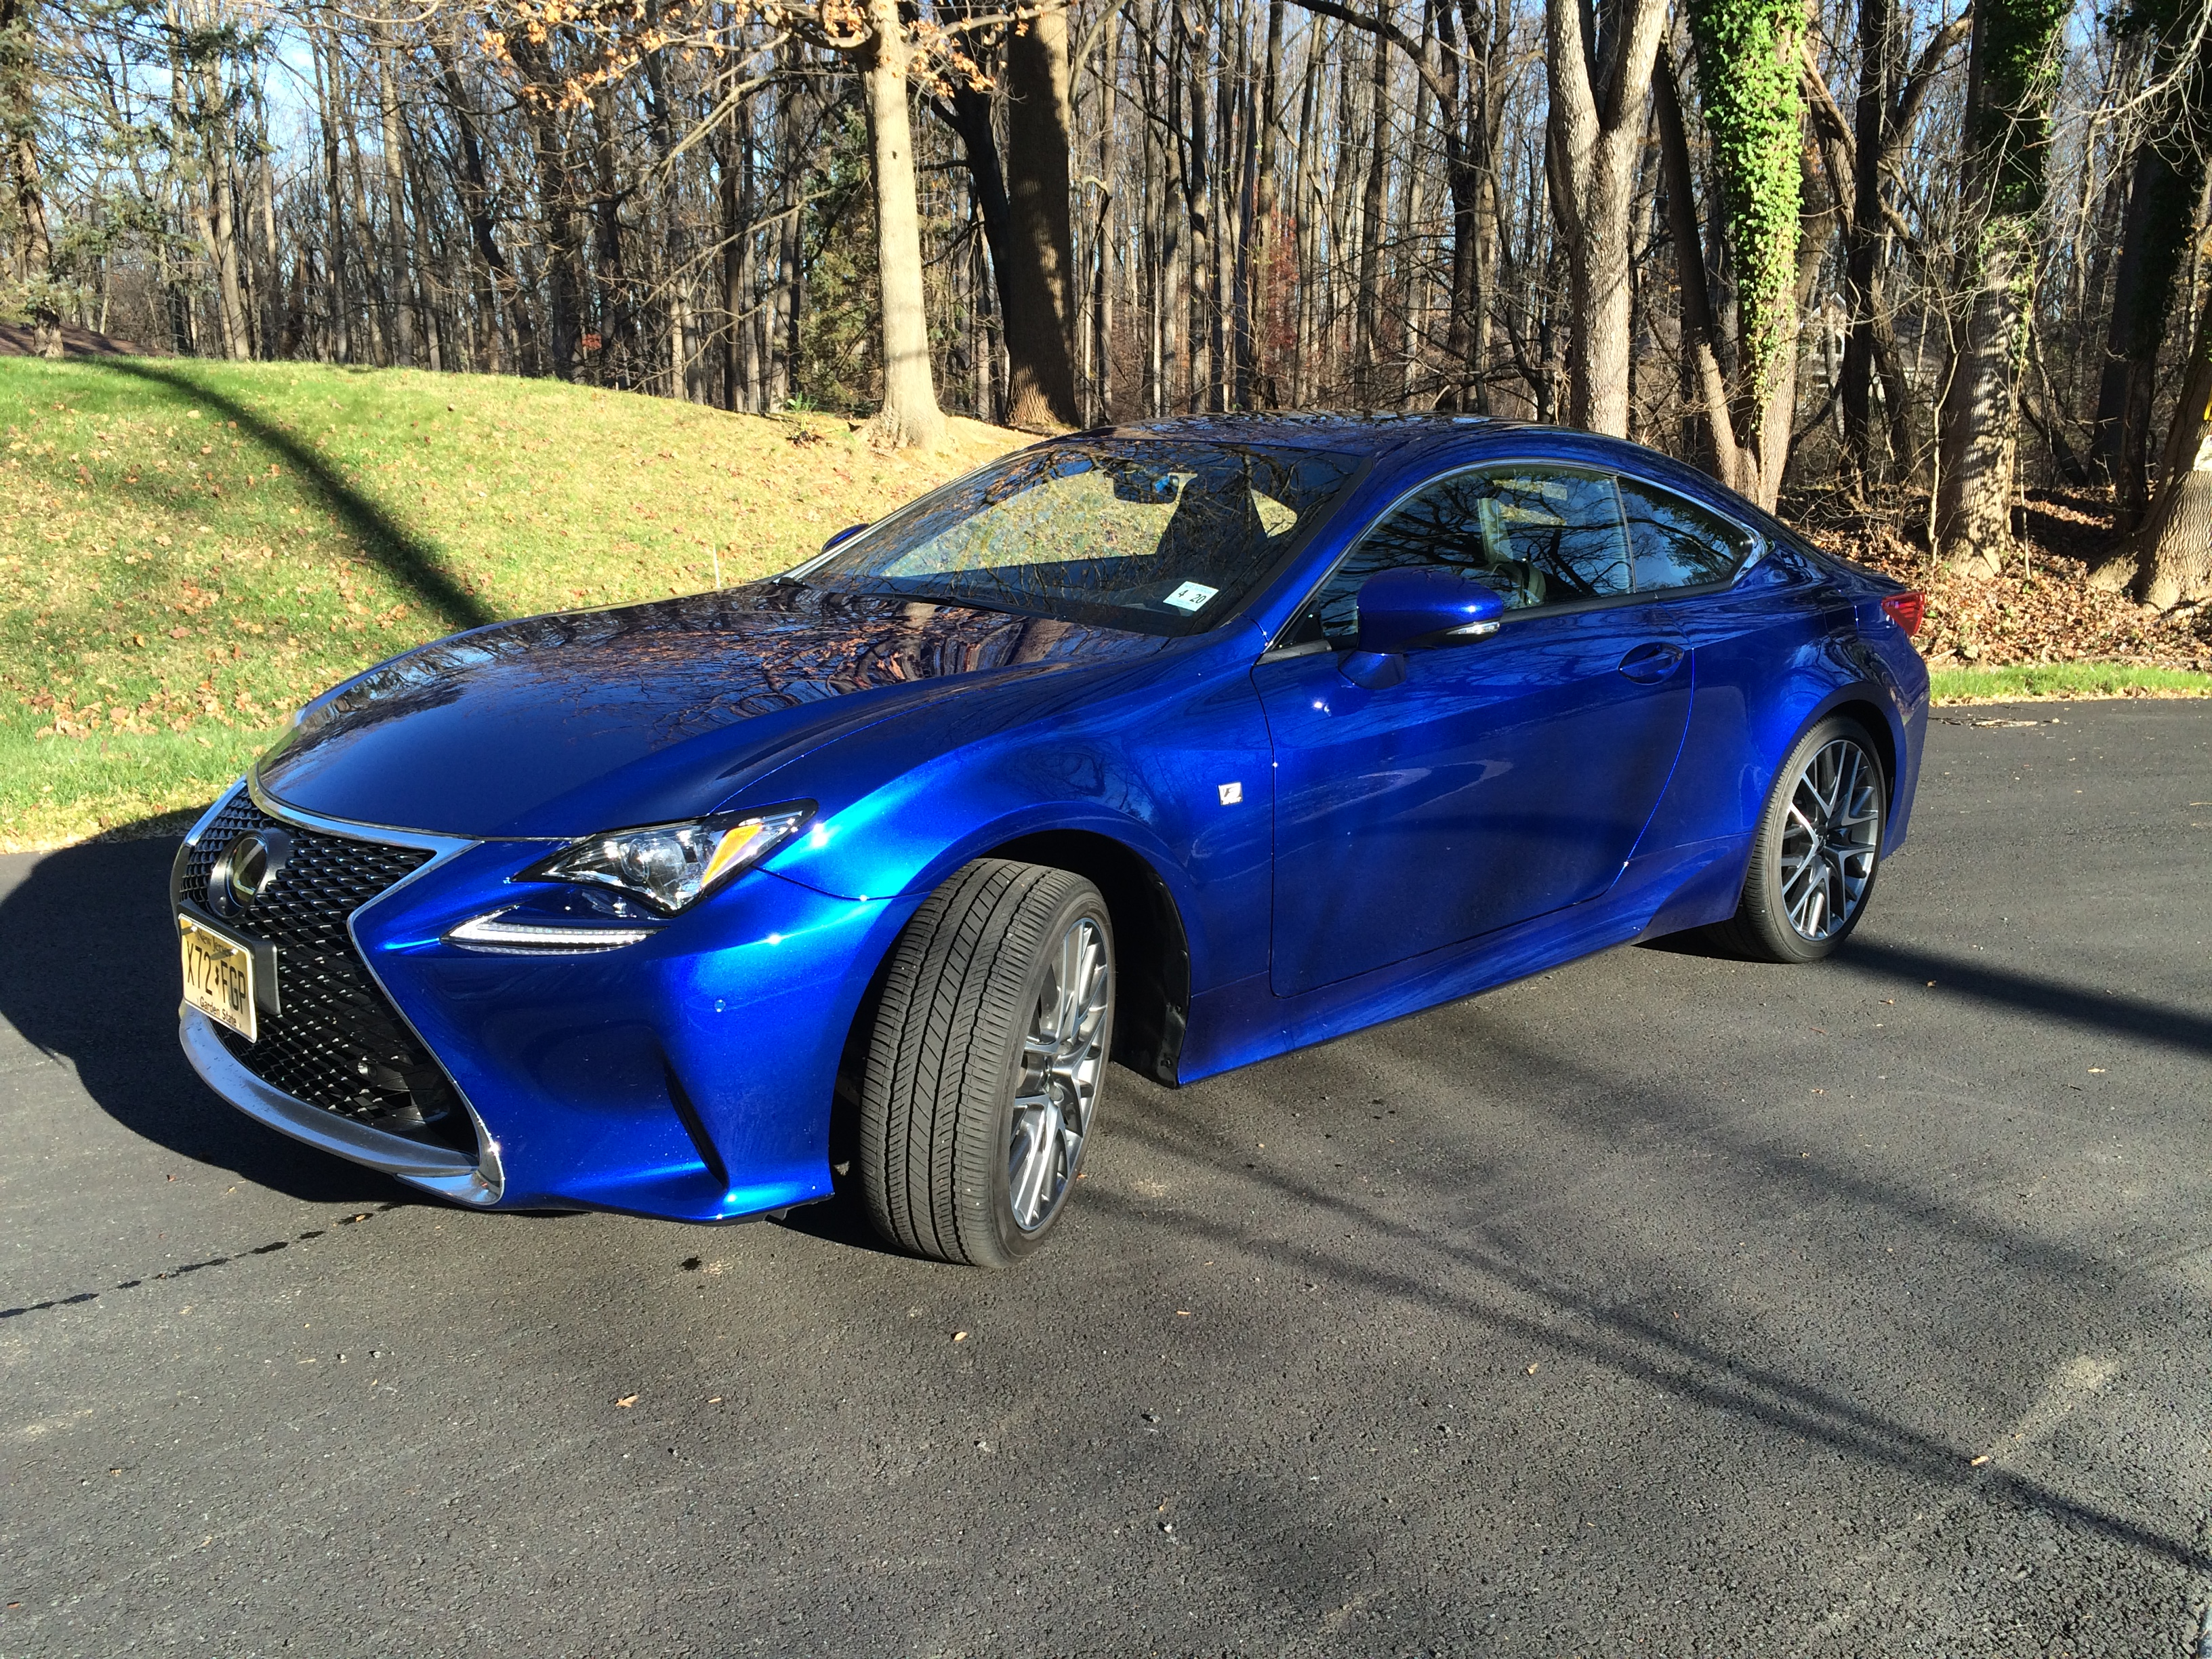 Lexus RC 350: A stylish coupe with AWD that can be used year-round